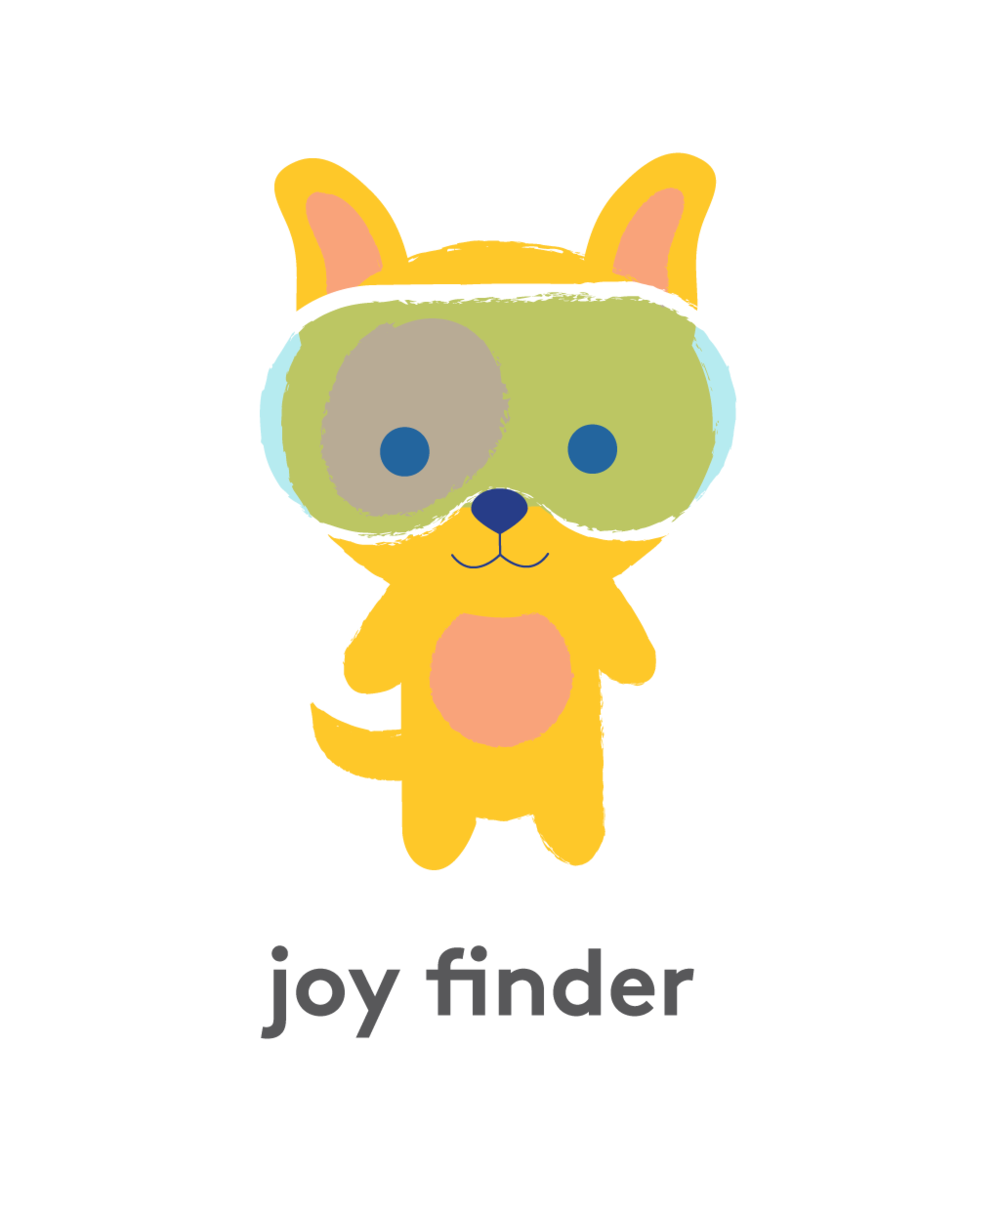 Dog: Joy finder